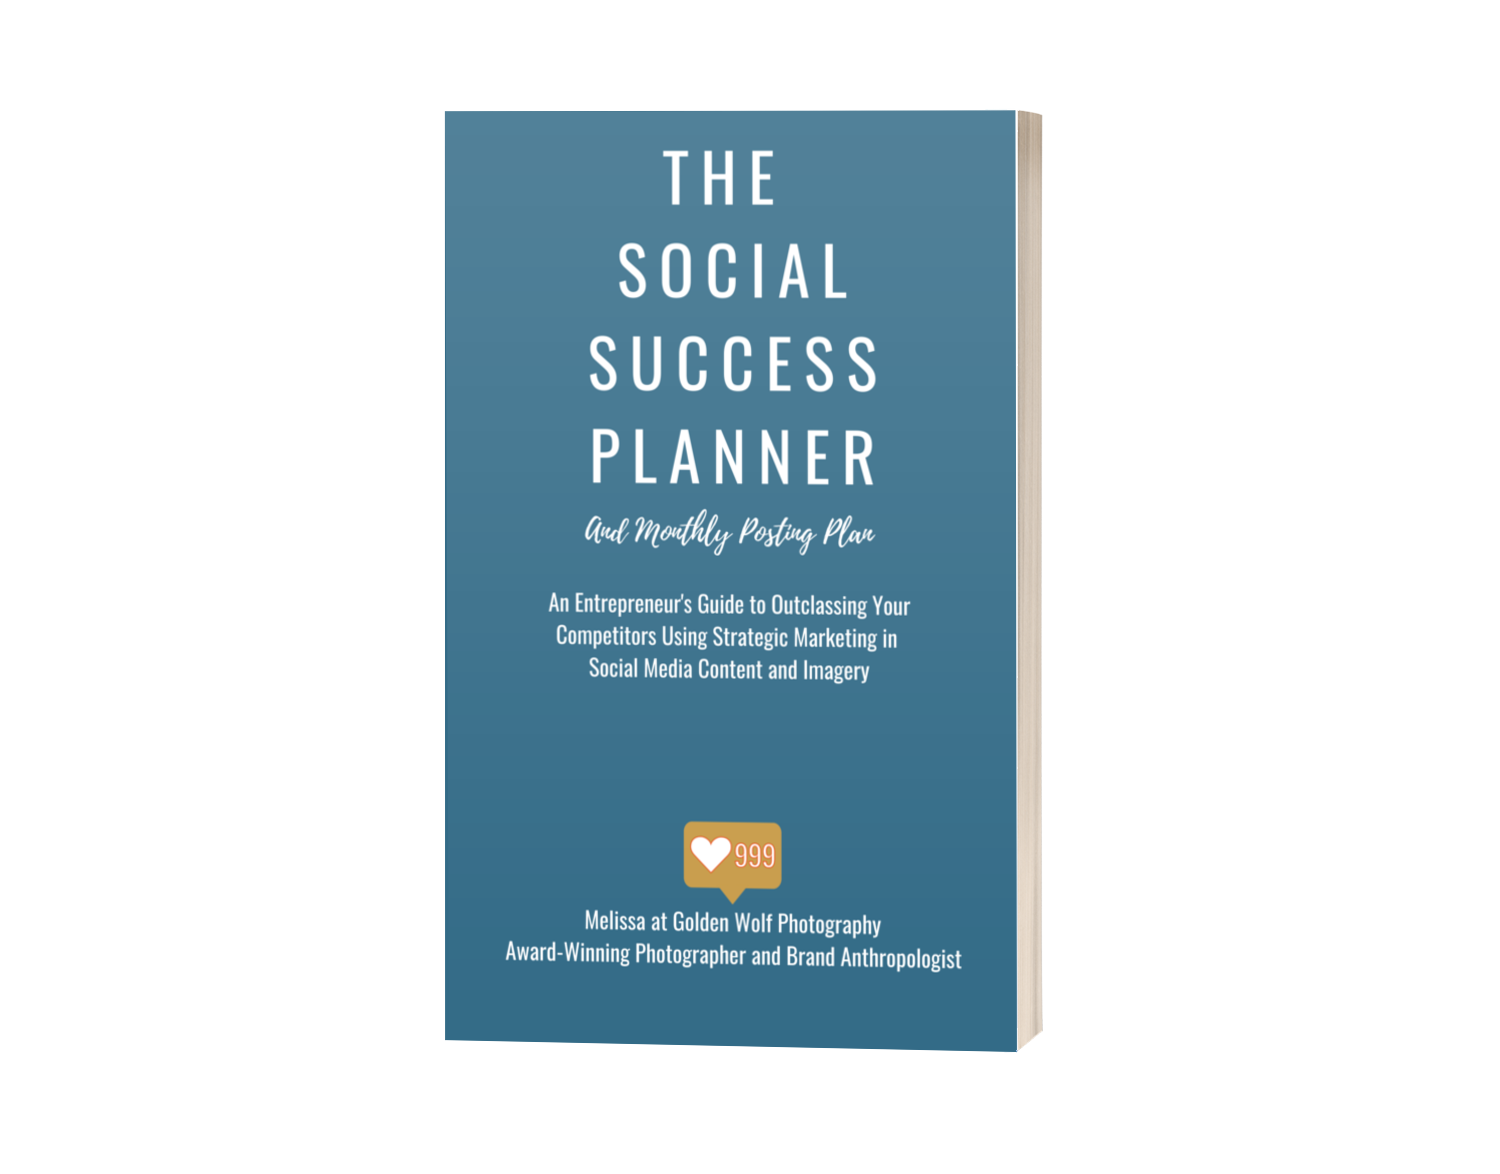 The Social Success Planner